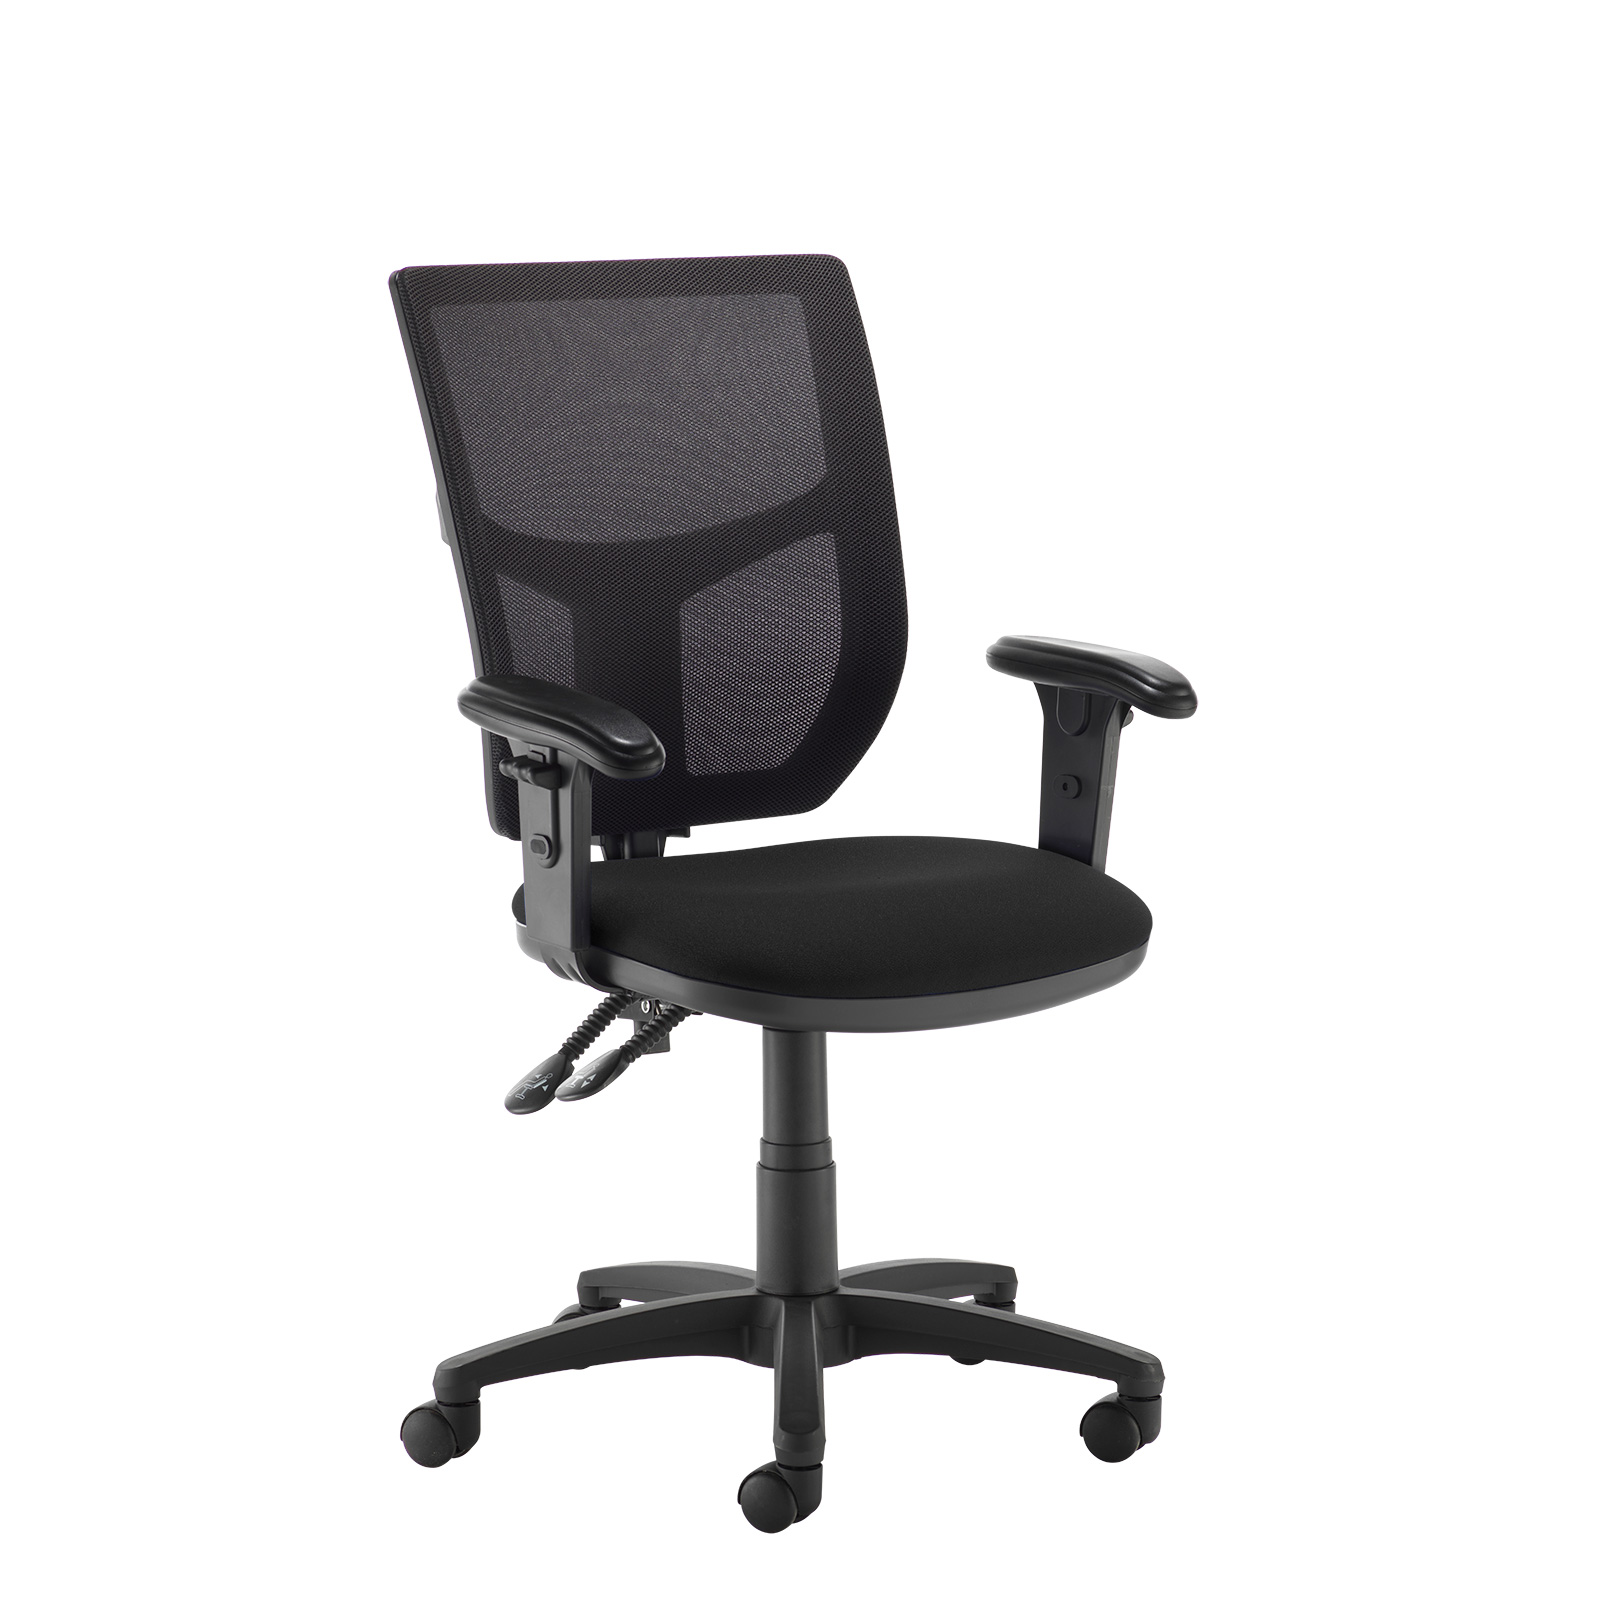 Desk Chairs Altino 2 lever high mesh back operators chair with adjustable arms - black